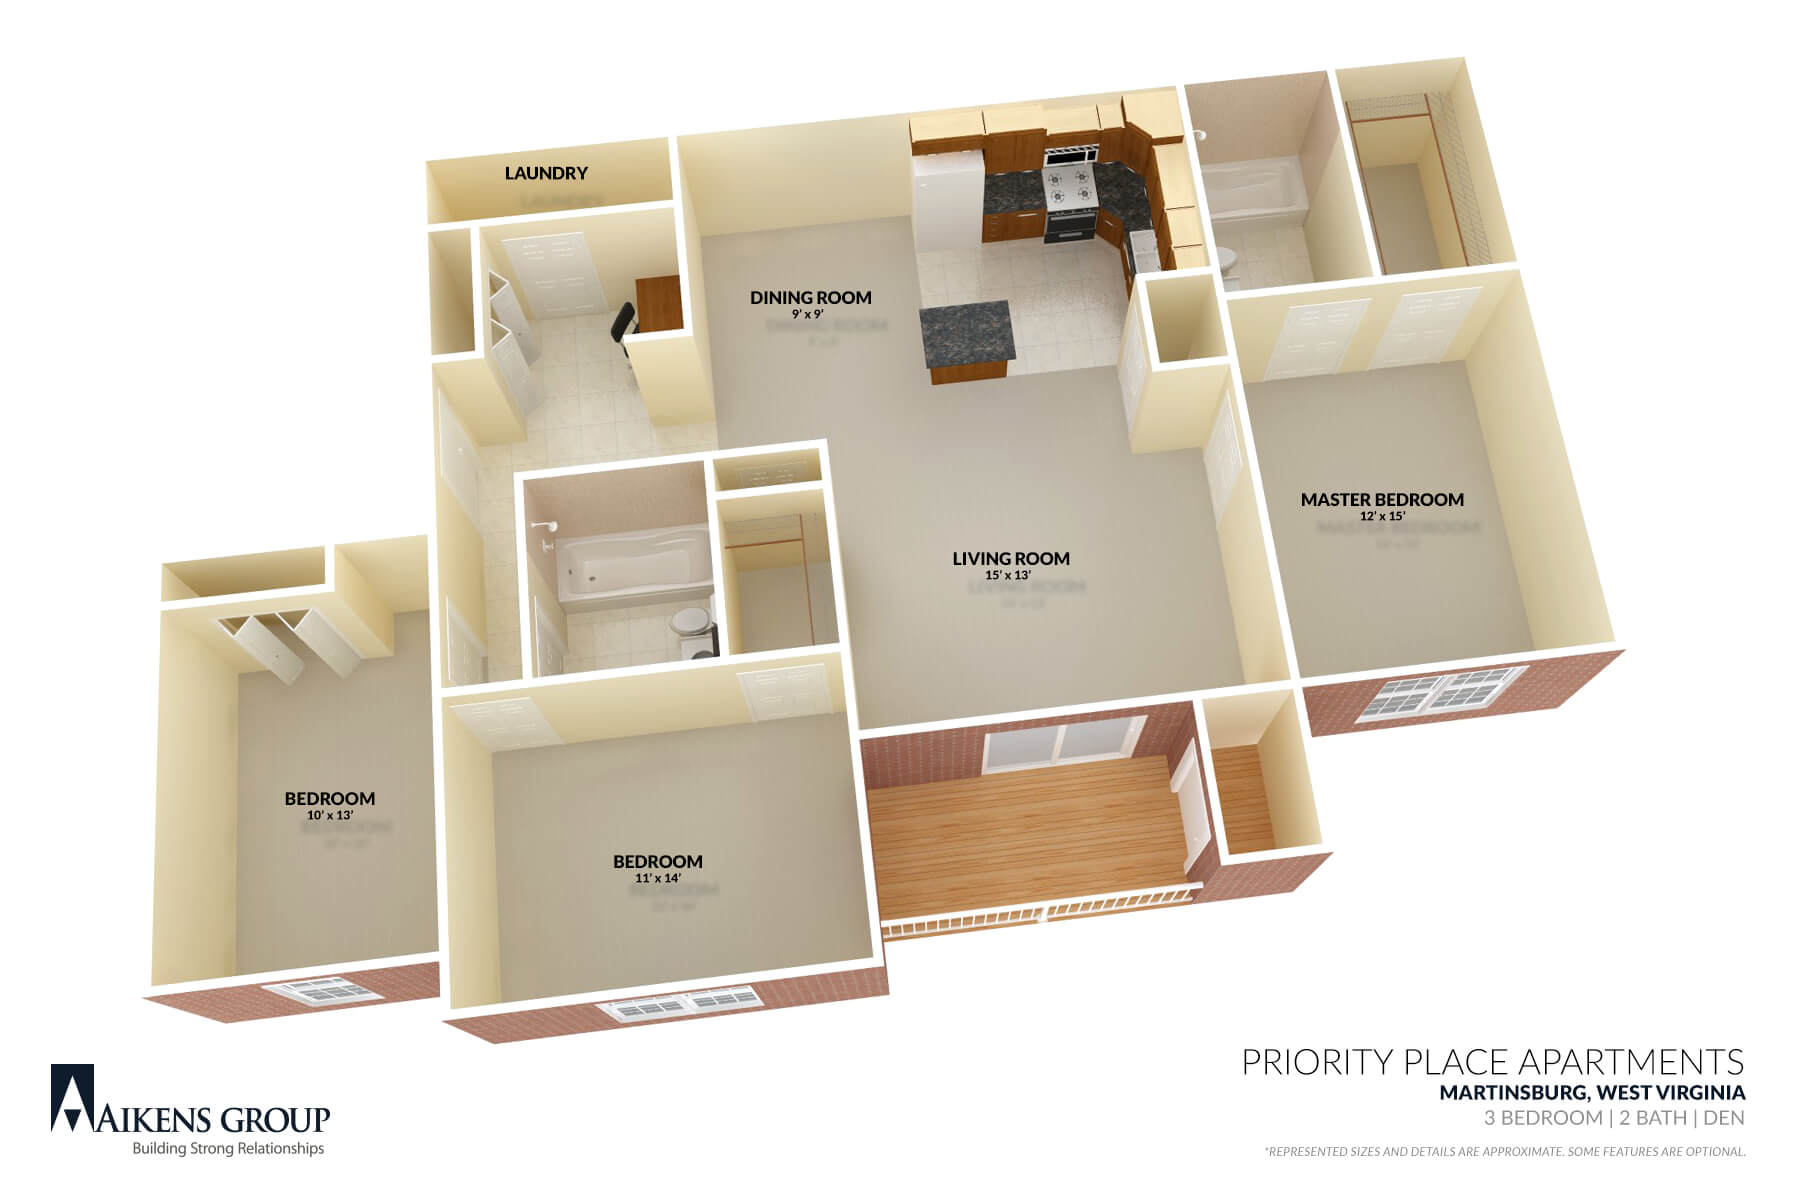 Priority Place Apartments 3BR Floorplan